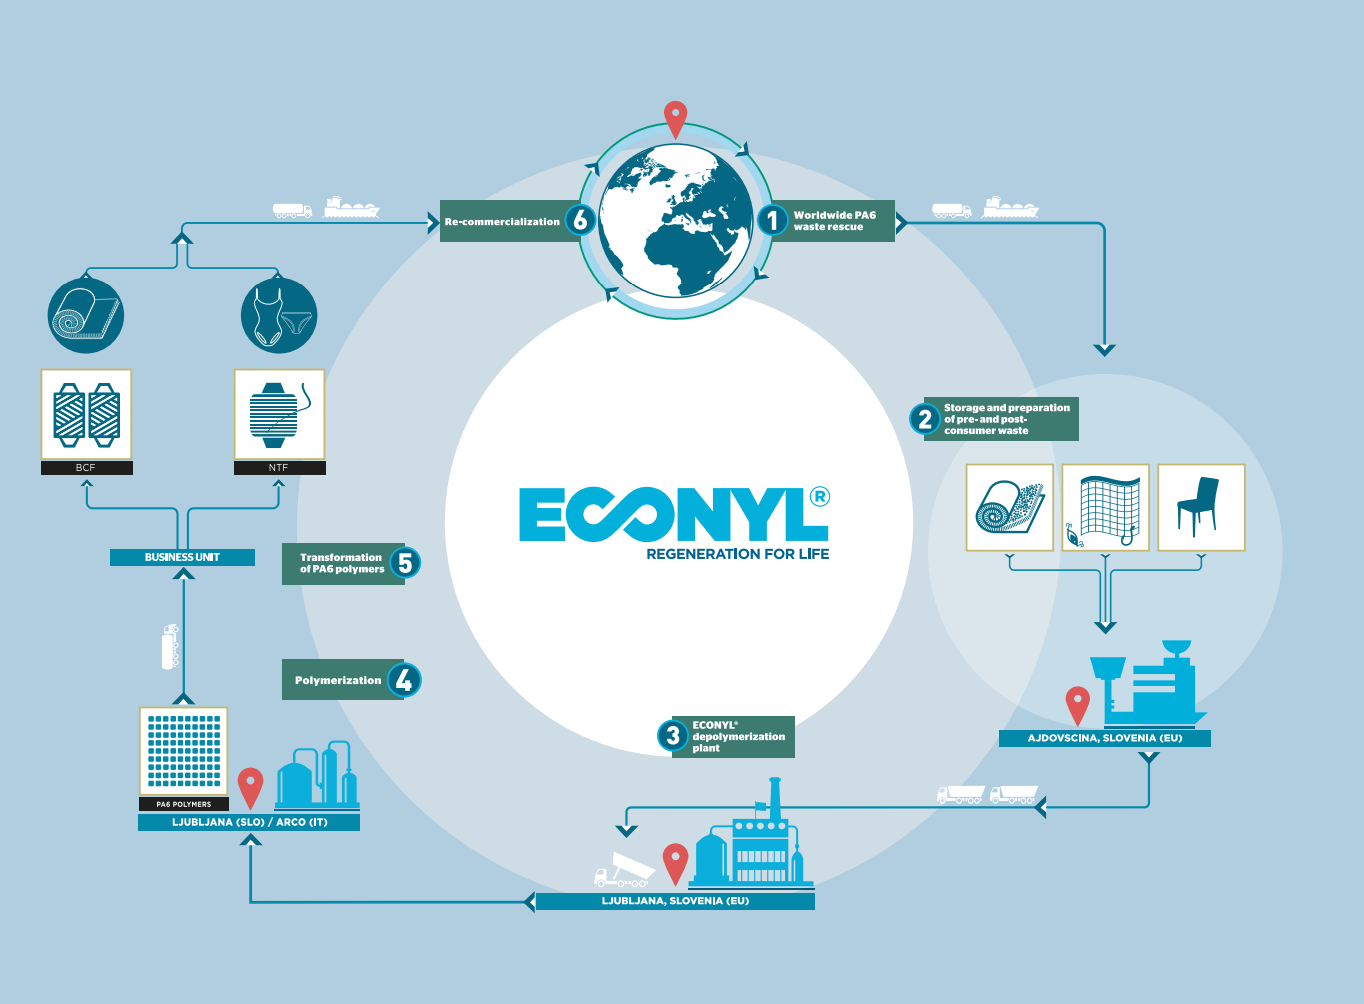 Behind the Process of ECONYL